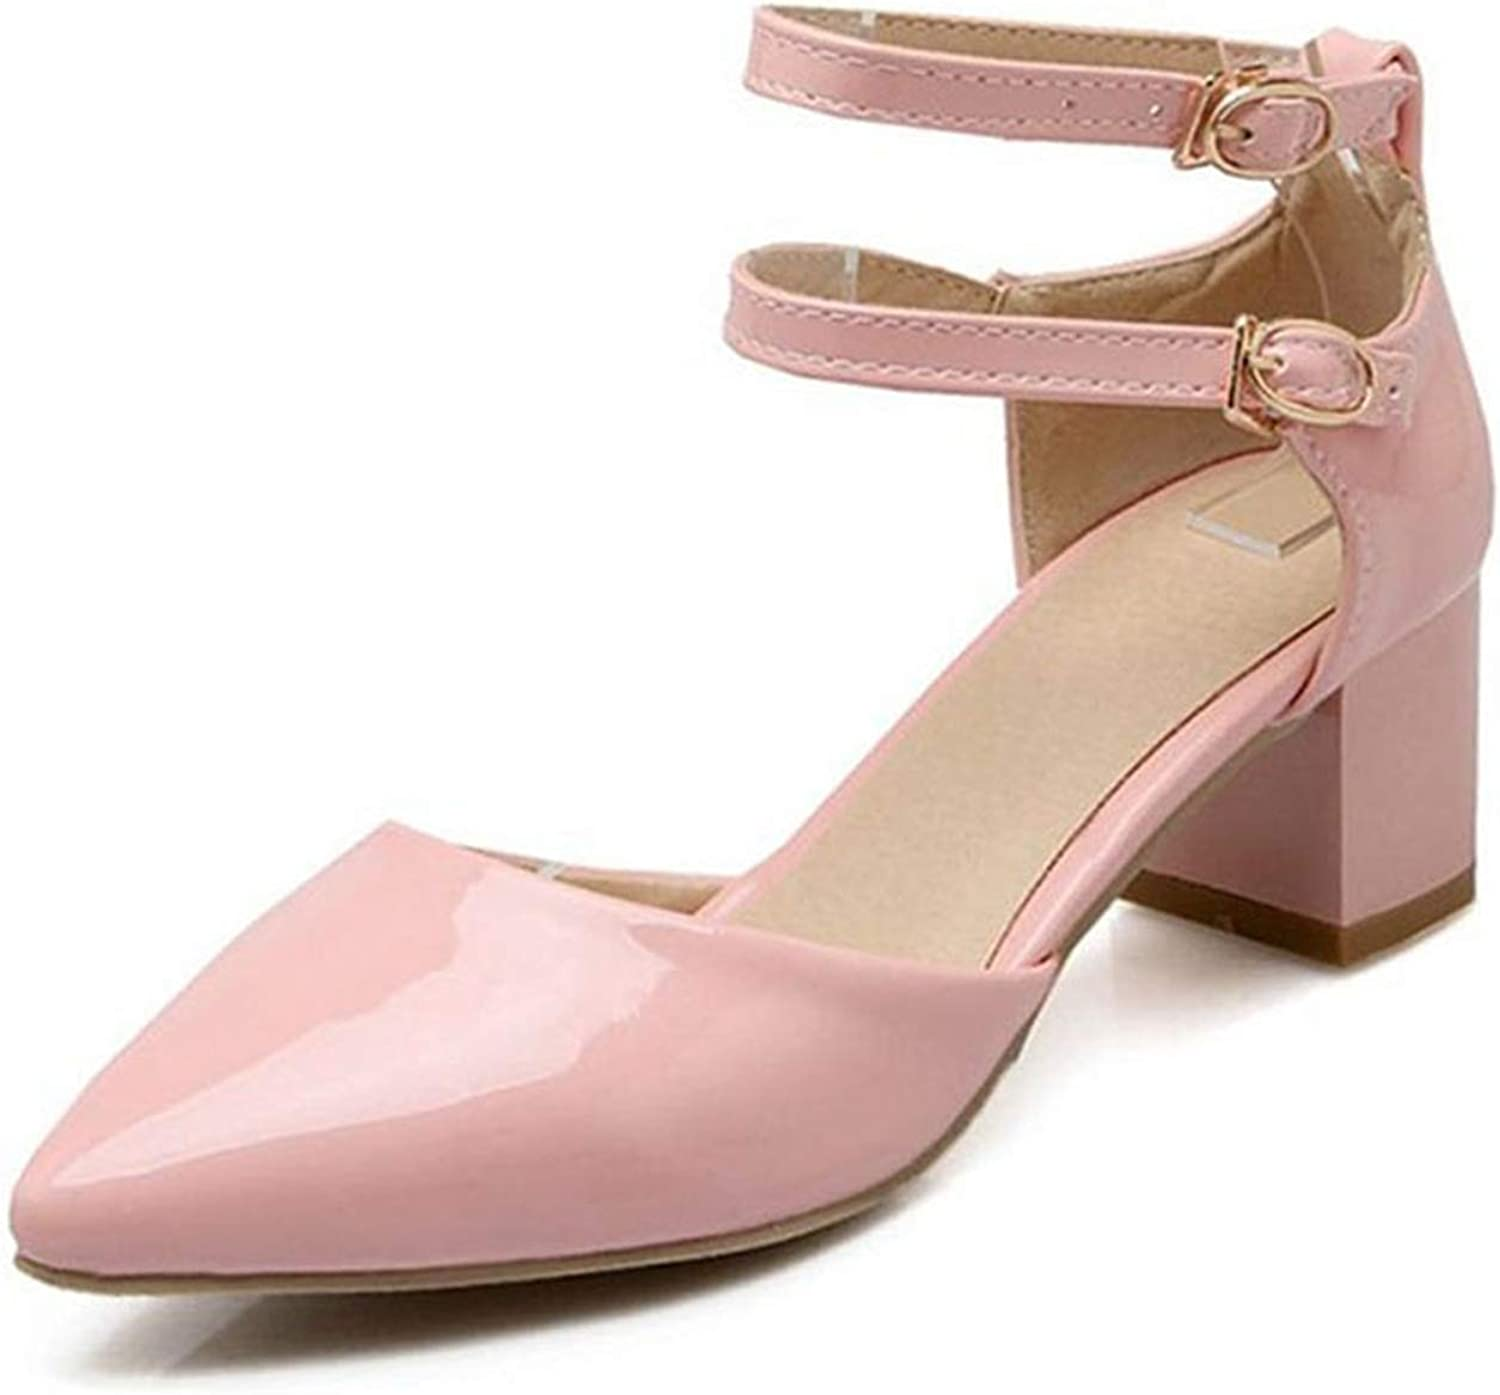 Fairly Elegant High Heel Ankle Strap Pointed Toe Thick Heel Summer Party shoes Sandal,Pink,5